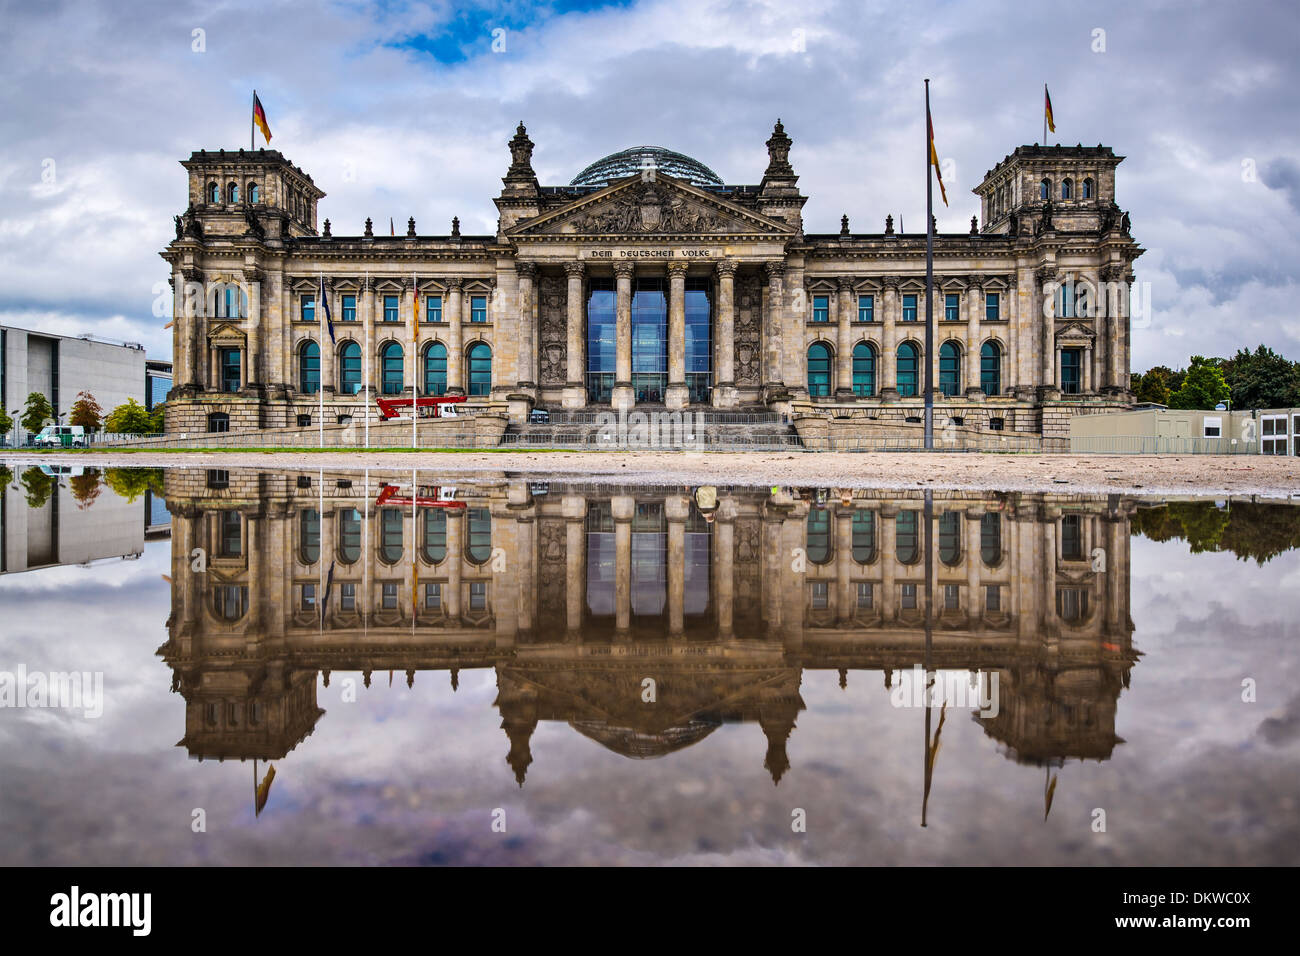 German Parliament Building Reichstag in Berlin, Germany. - Stock Image